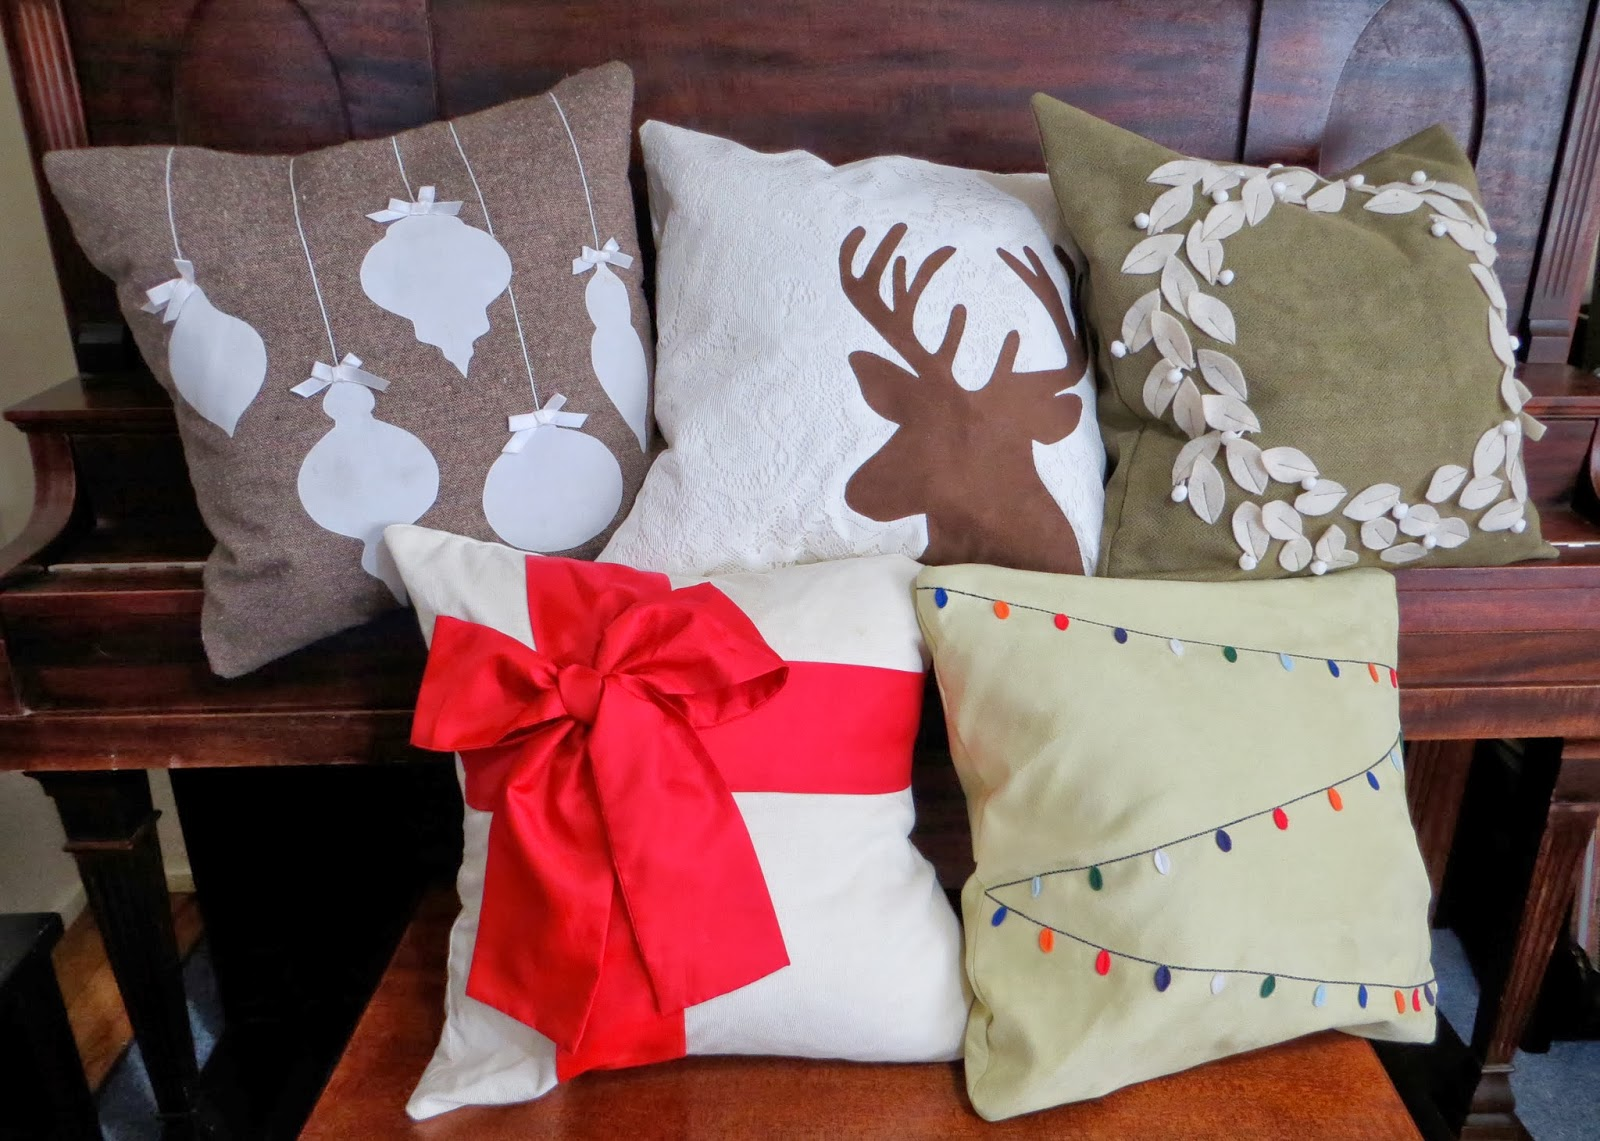 The Project Lady Tutorial For Making Christmas Pillow Covers